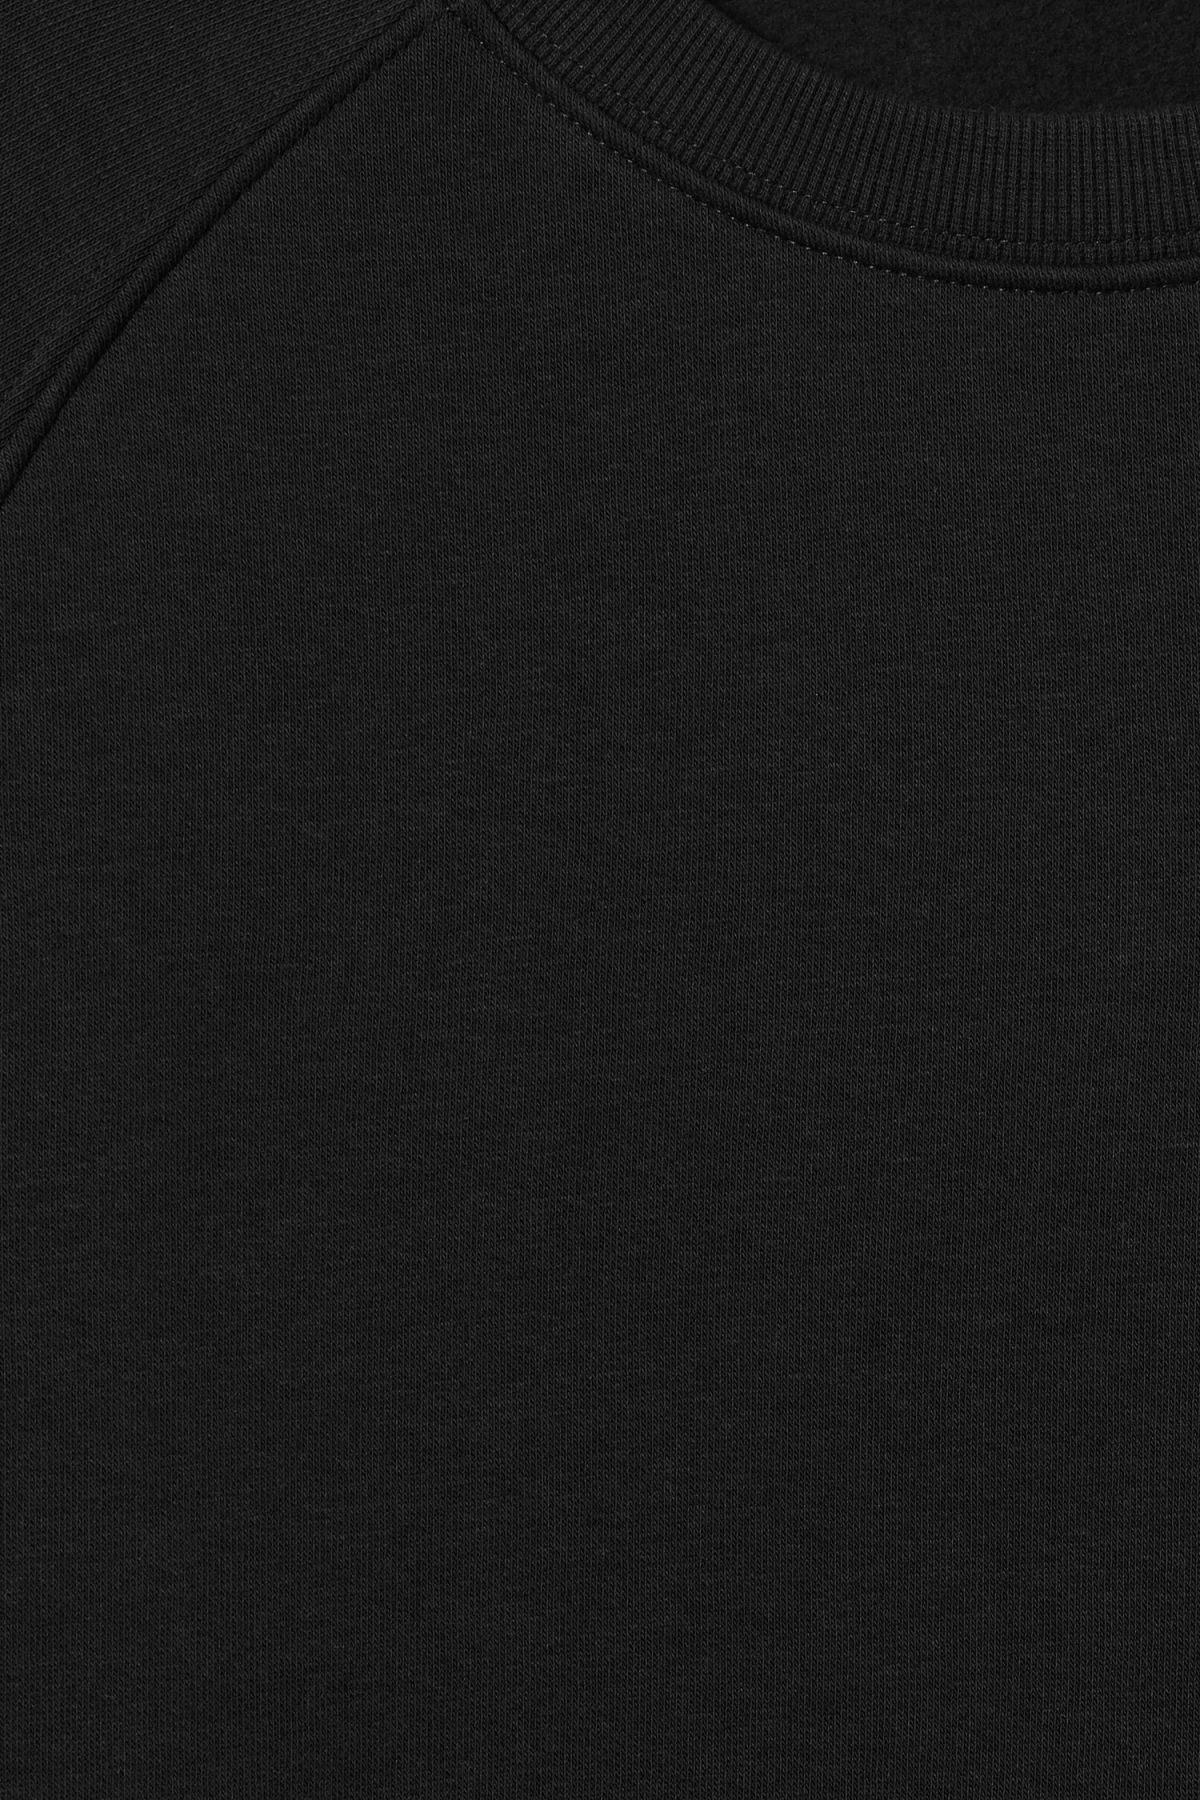 Detailed image of Weekday paris sweatshirt in black